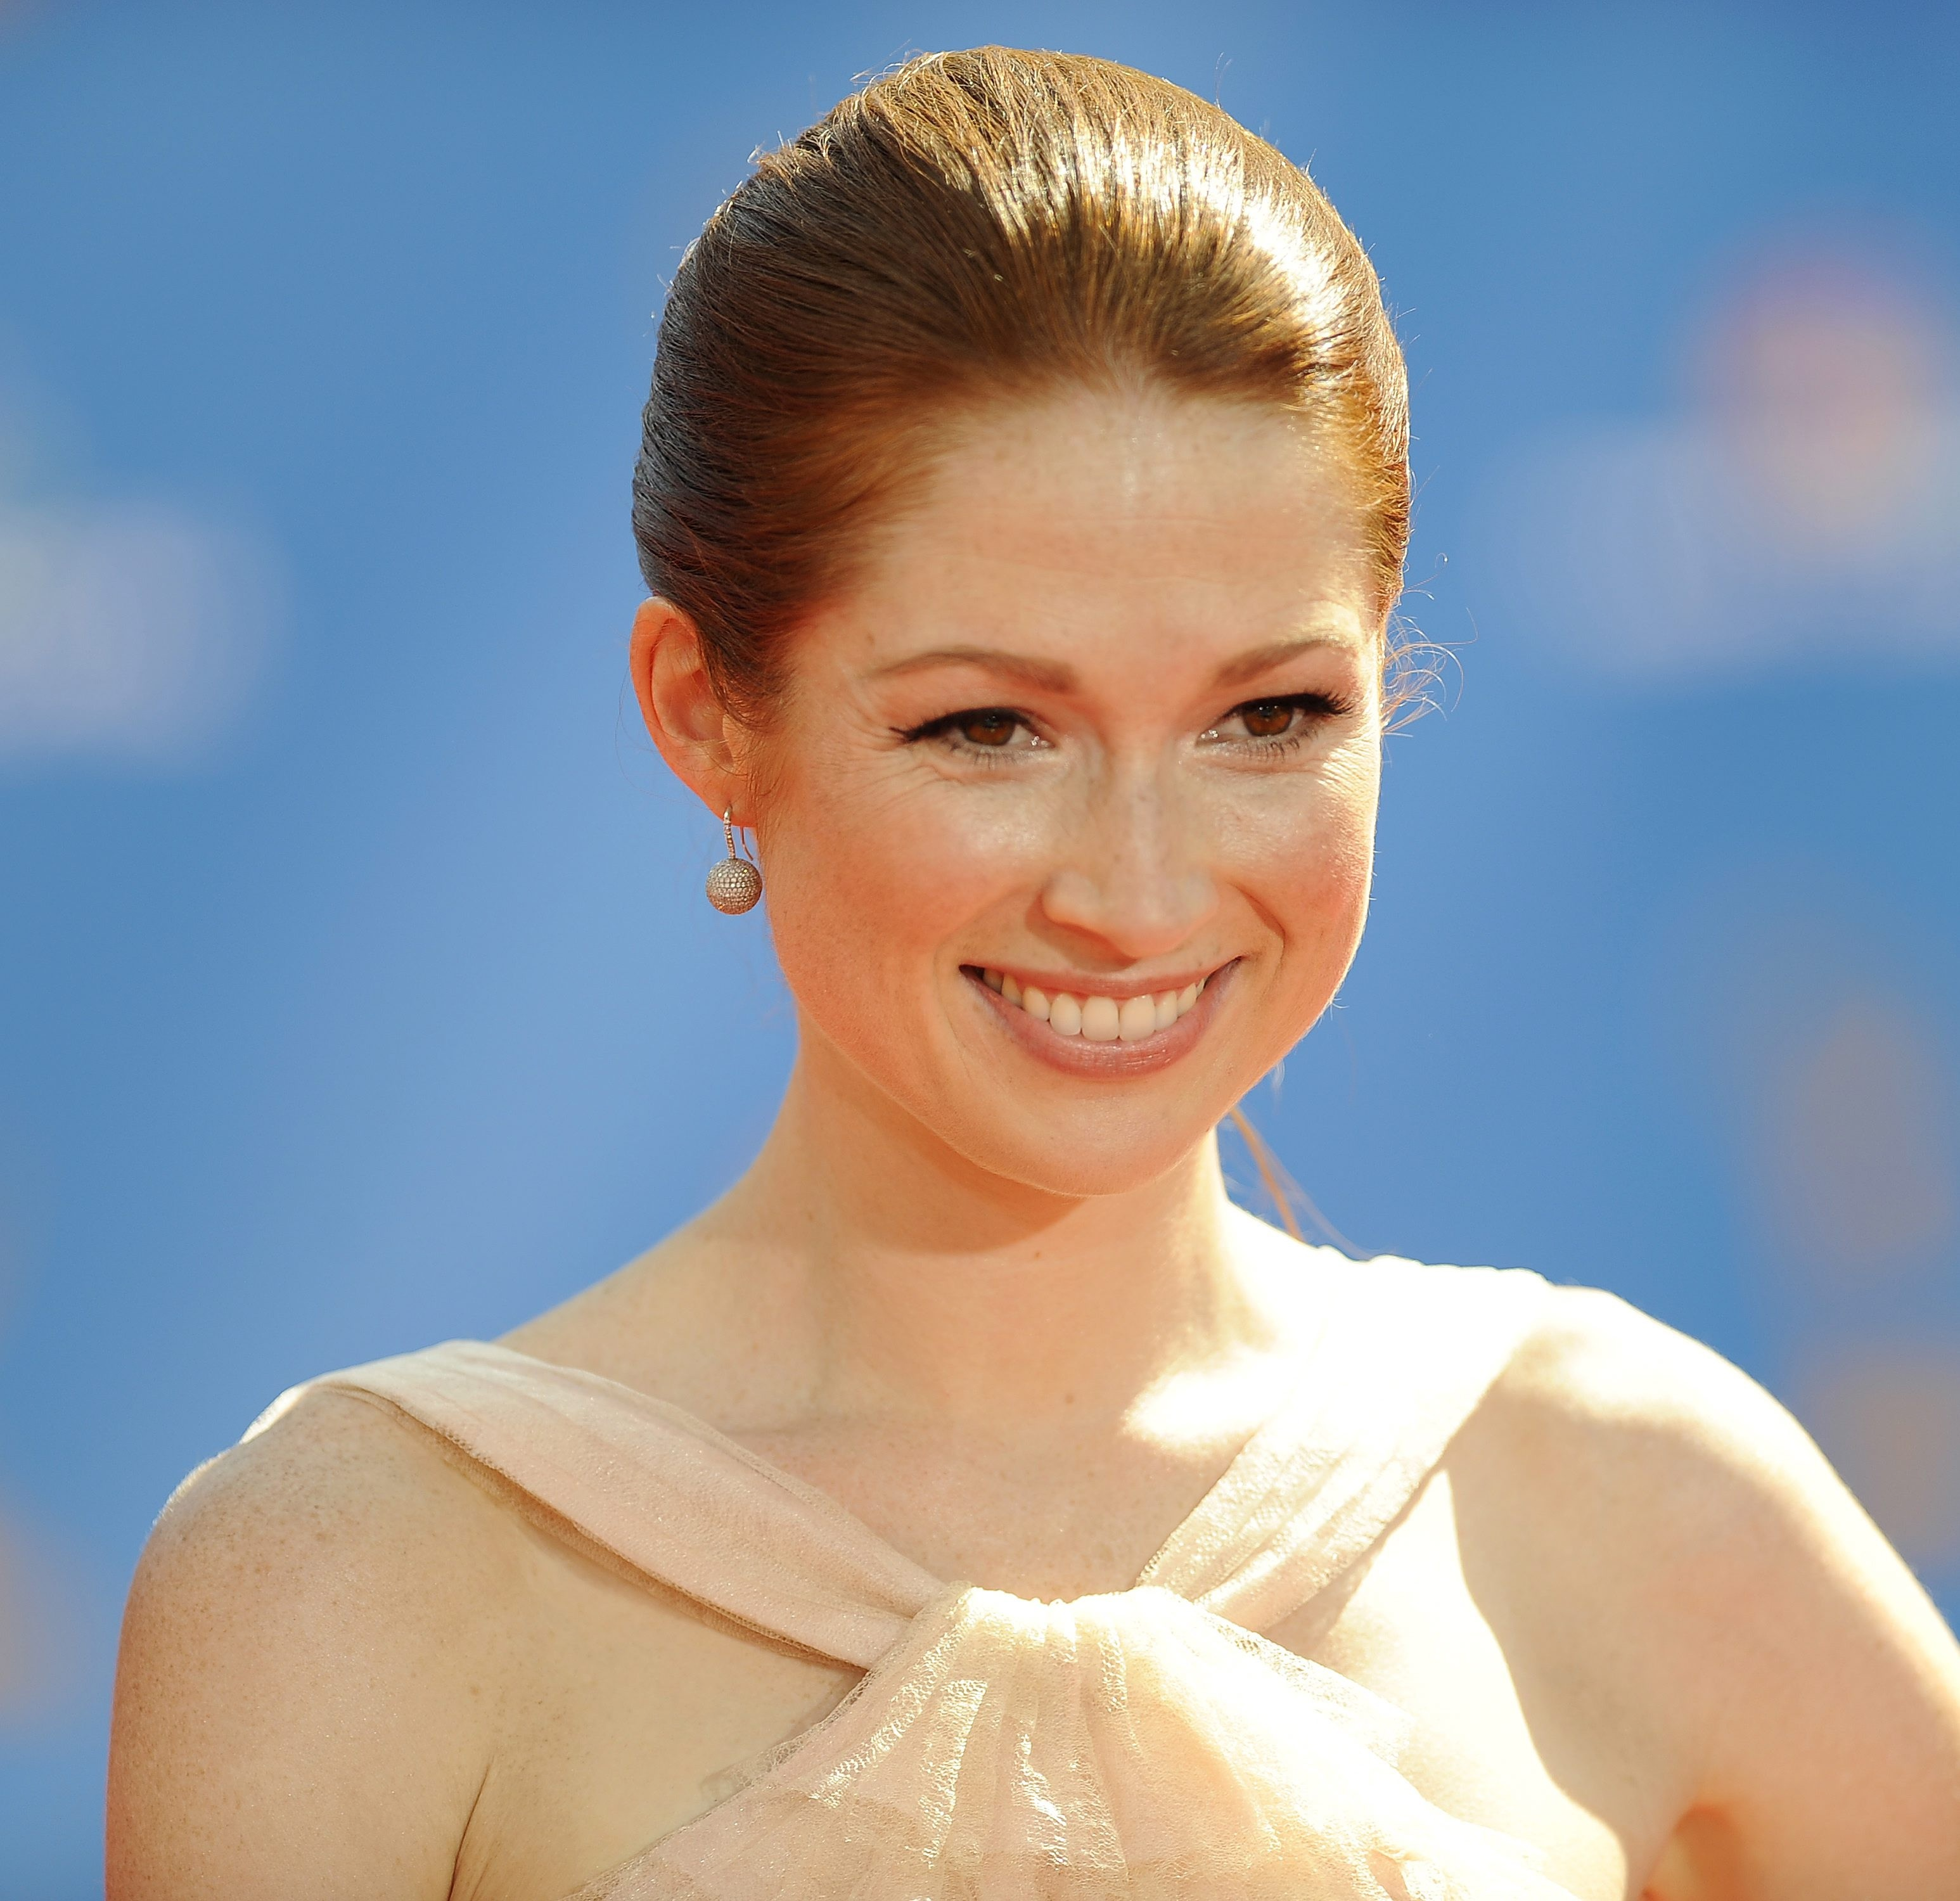 Ellie Kemper Wallpapers High Resolution And Quality Download